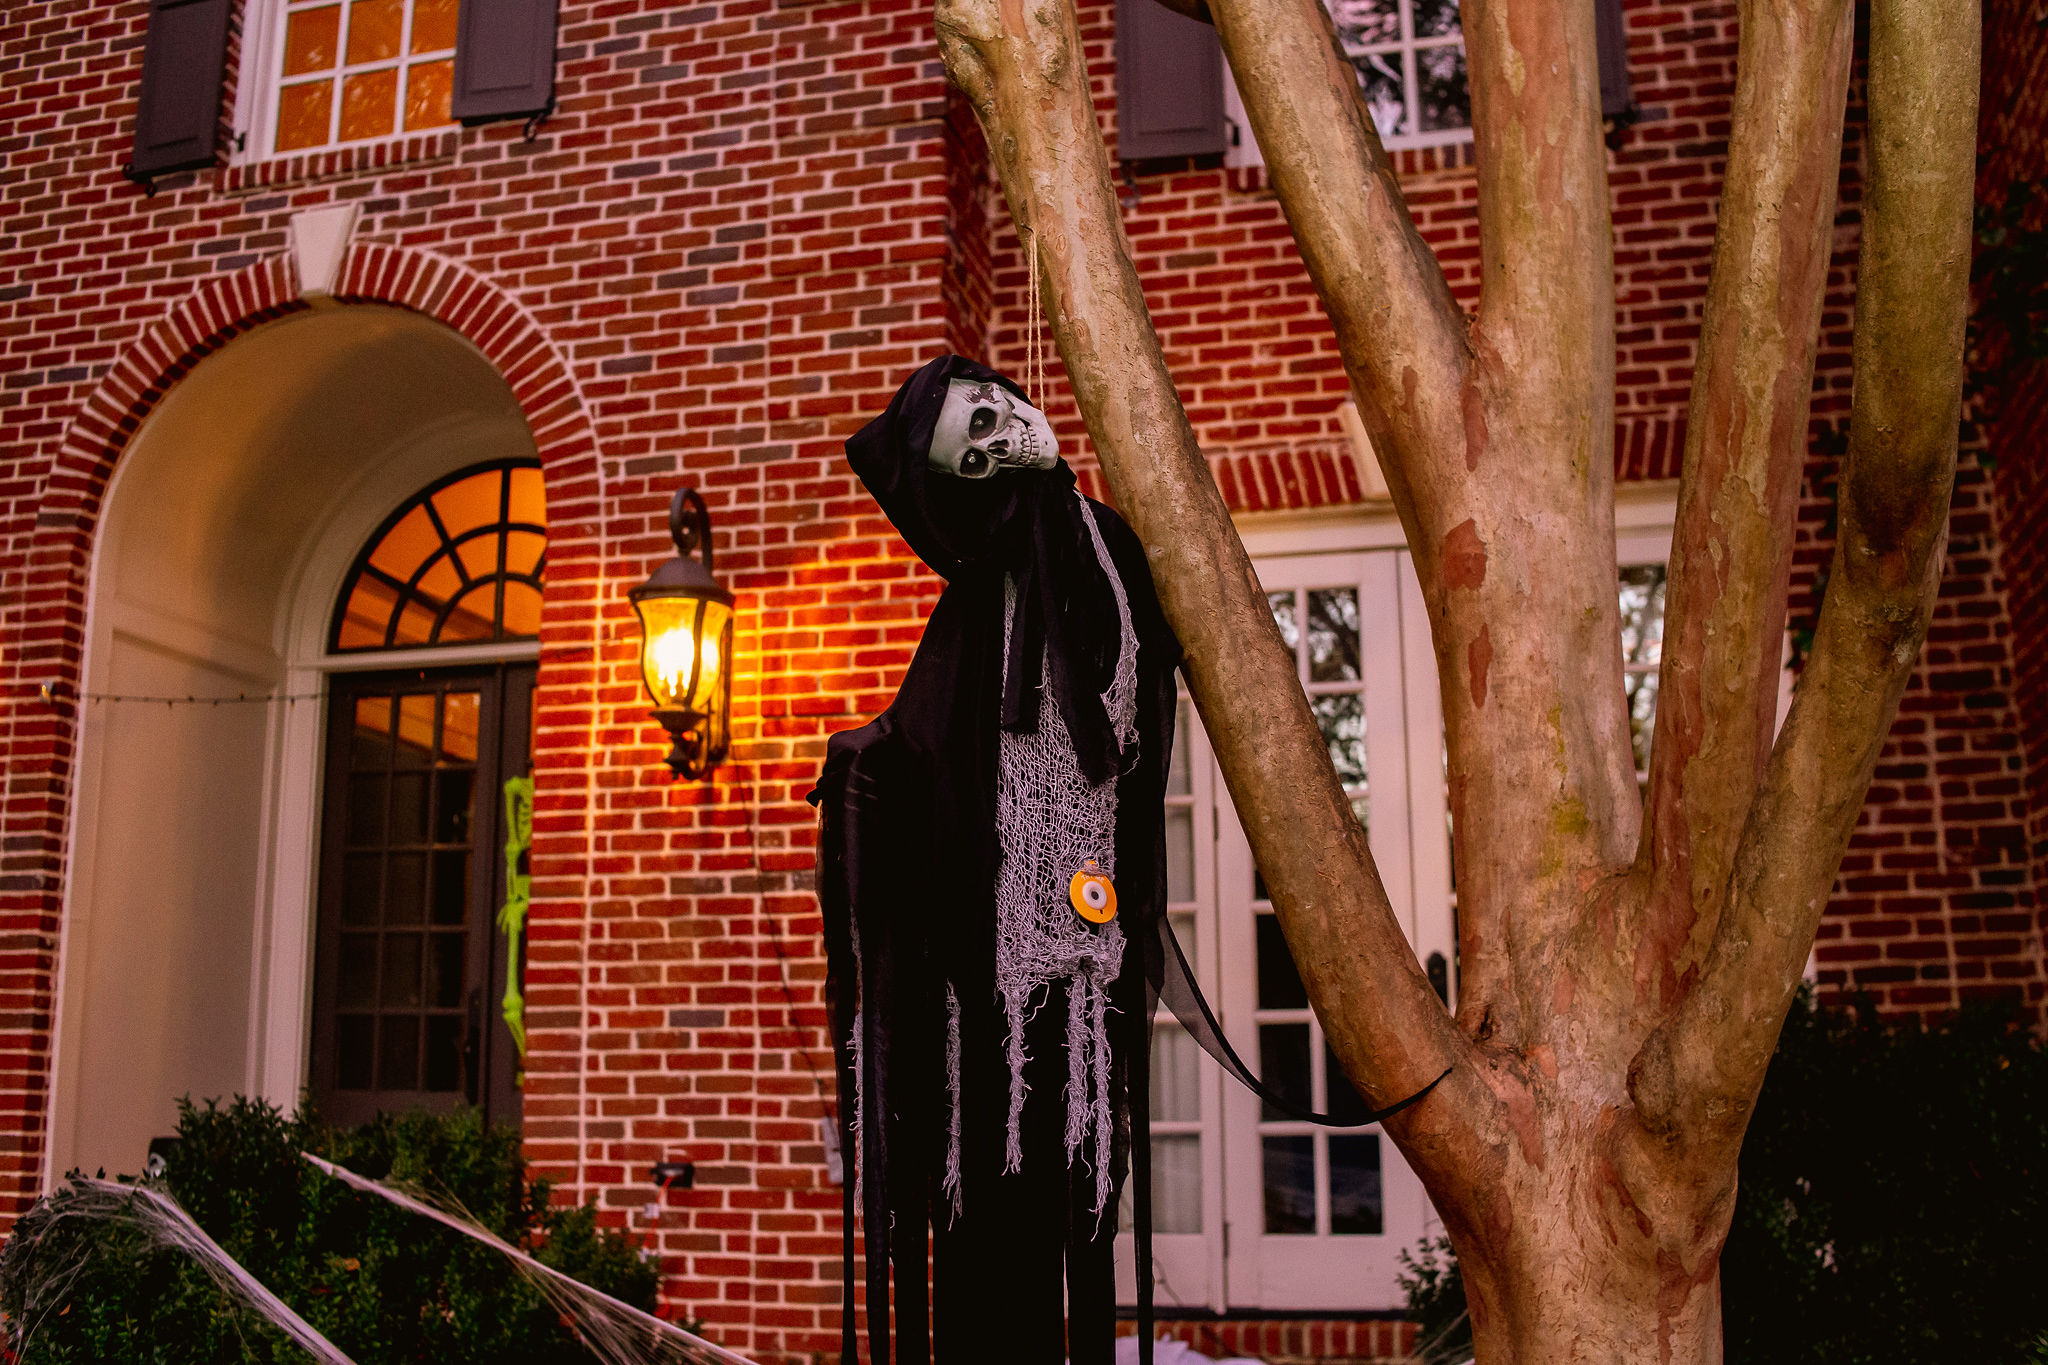 skeleton hanging from tree in front yard of brick house for Halloween party